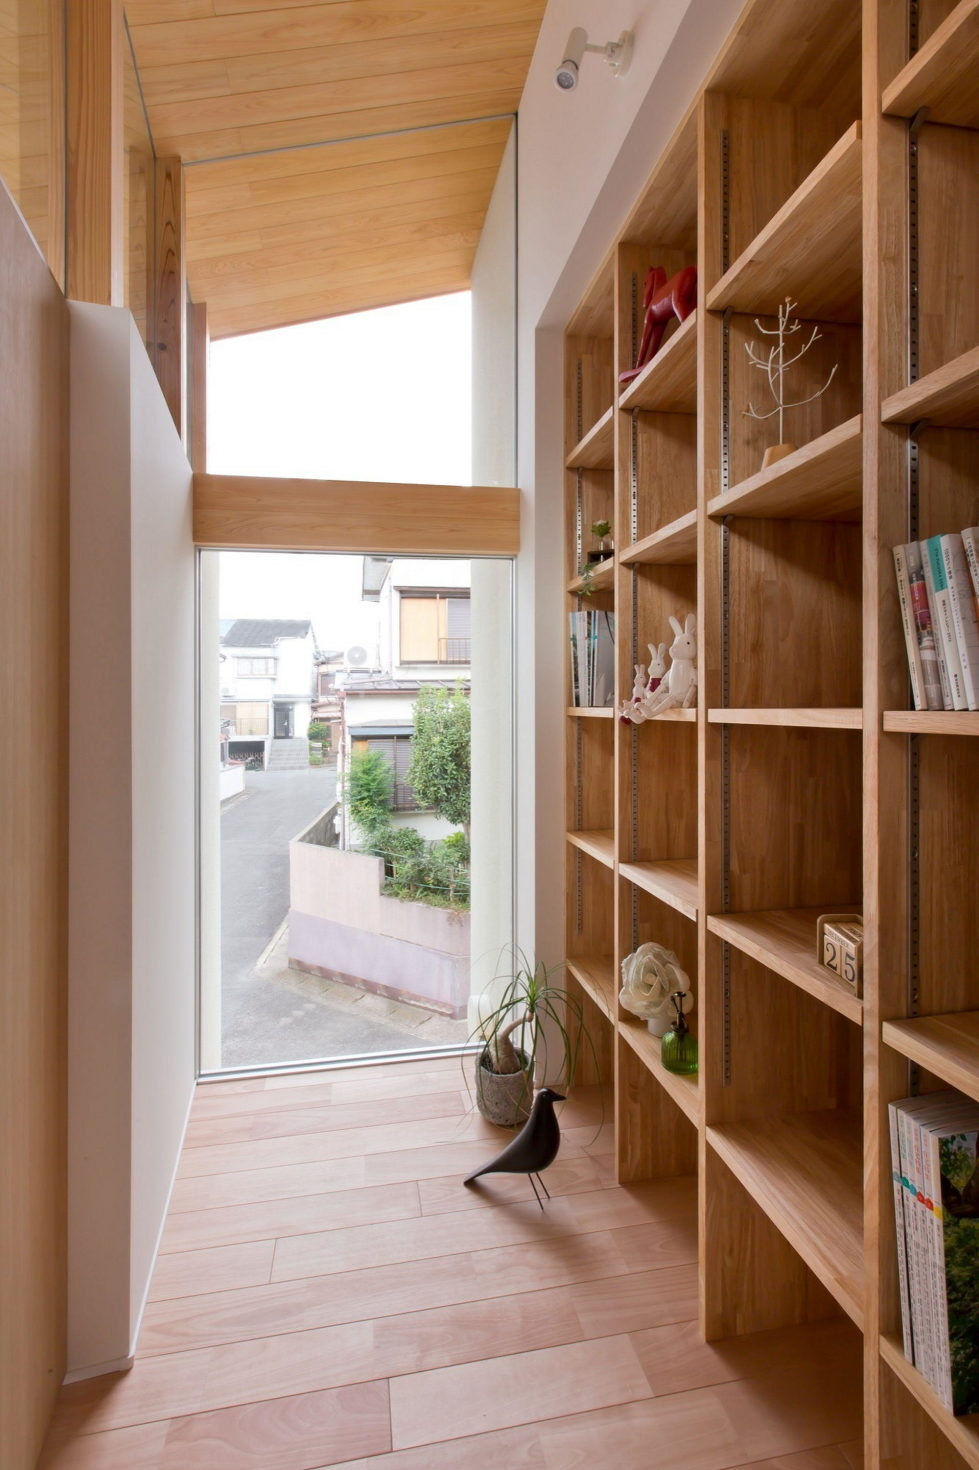 The House In Nipponese Minimalism In Kyoto By ALTS Design Office 9